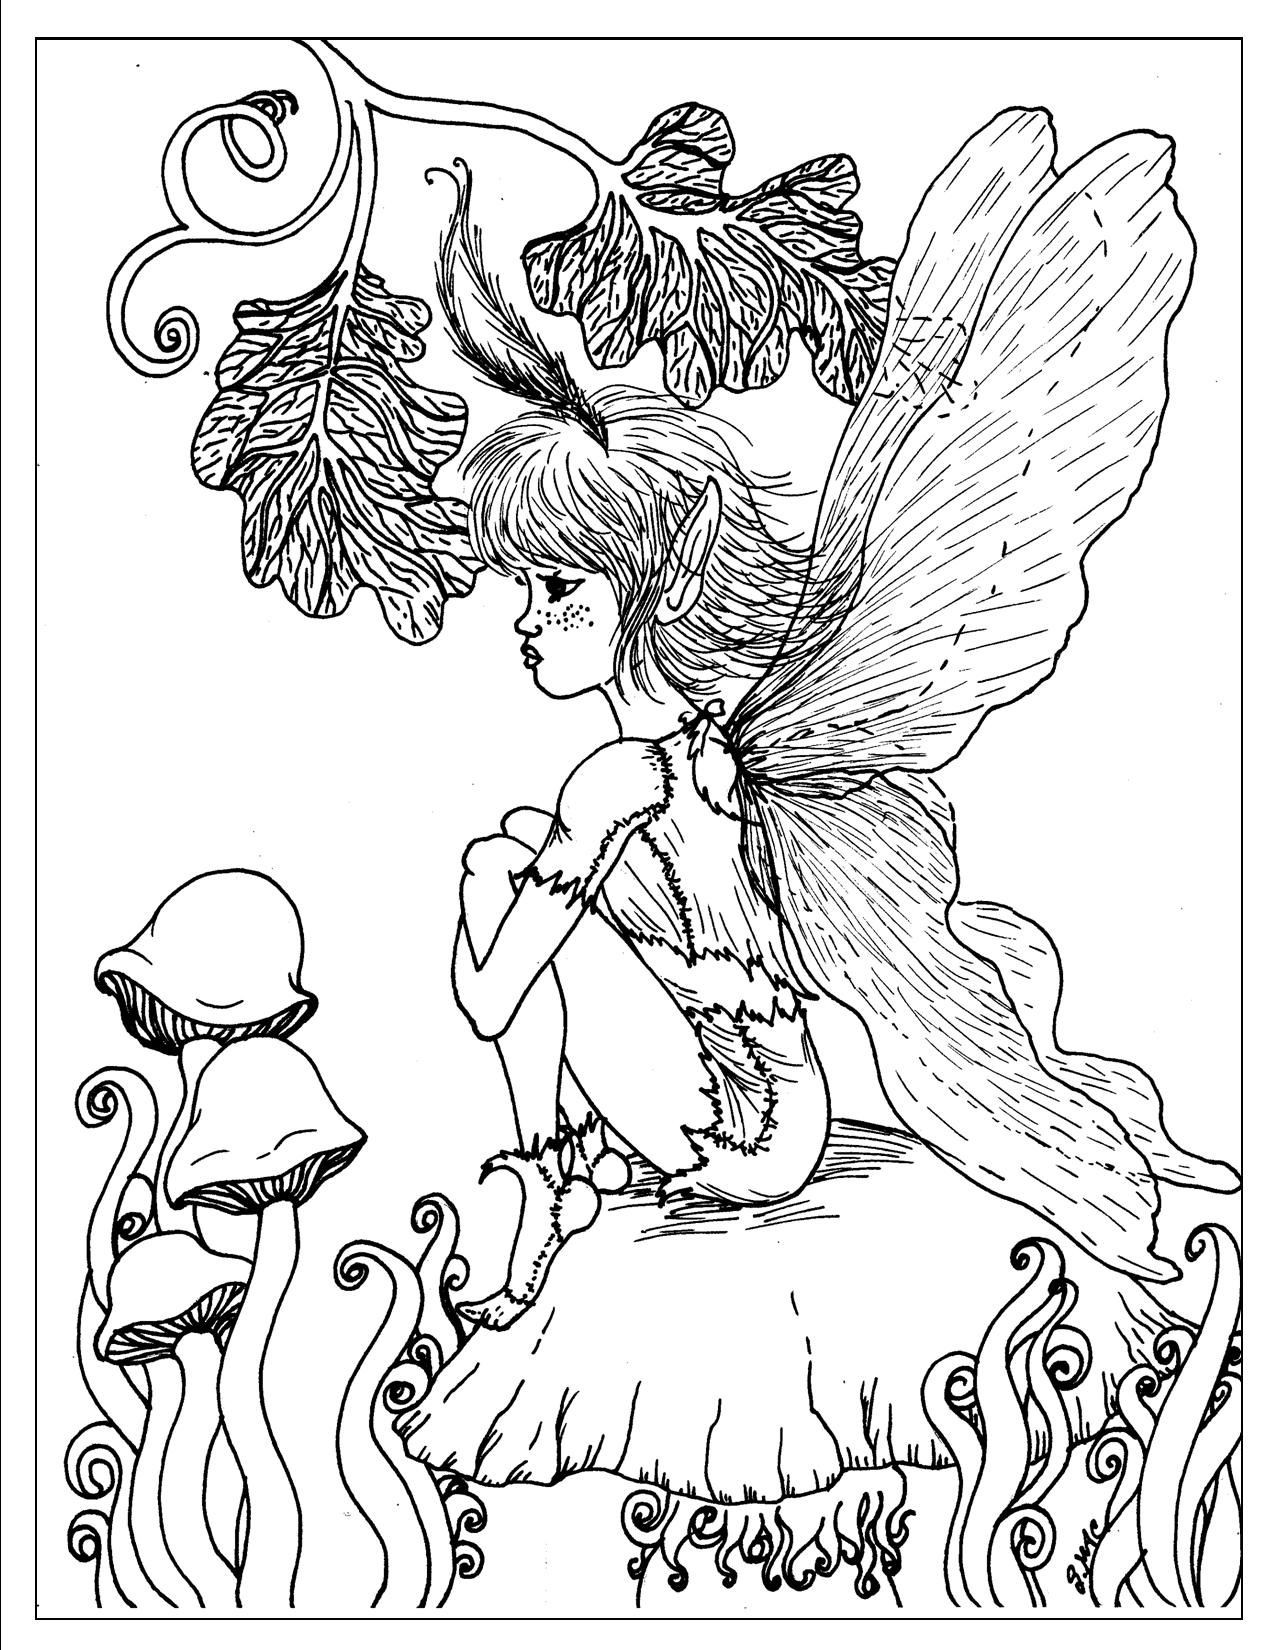 Adult Coloring Book Download  Fantasy coloring pages for adults to and print